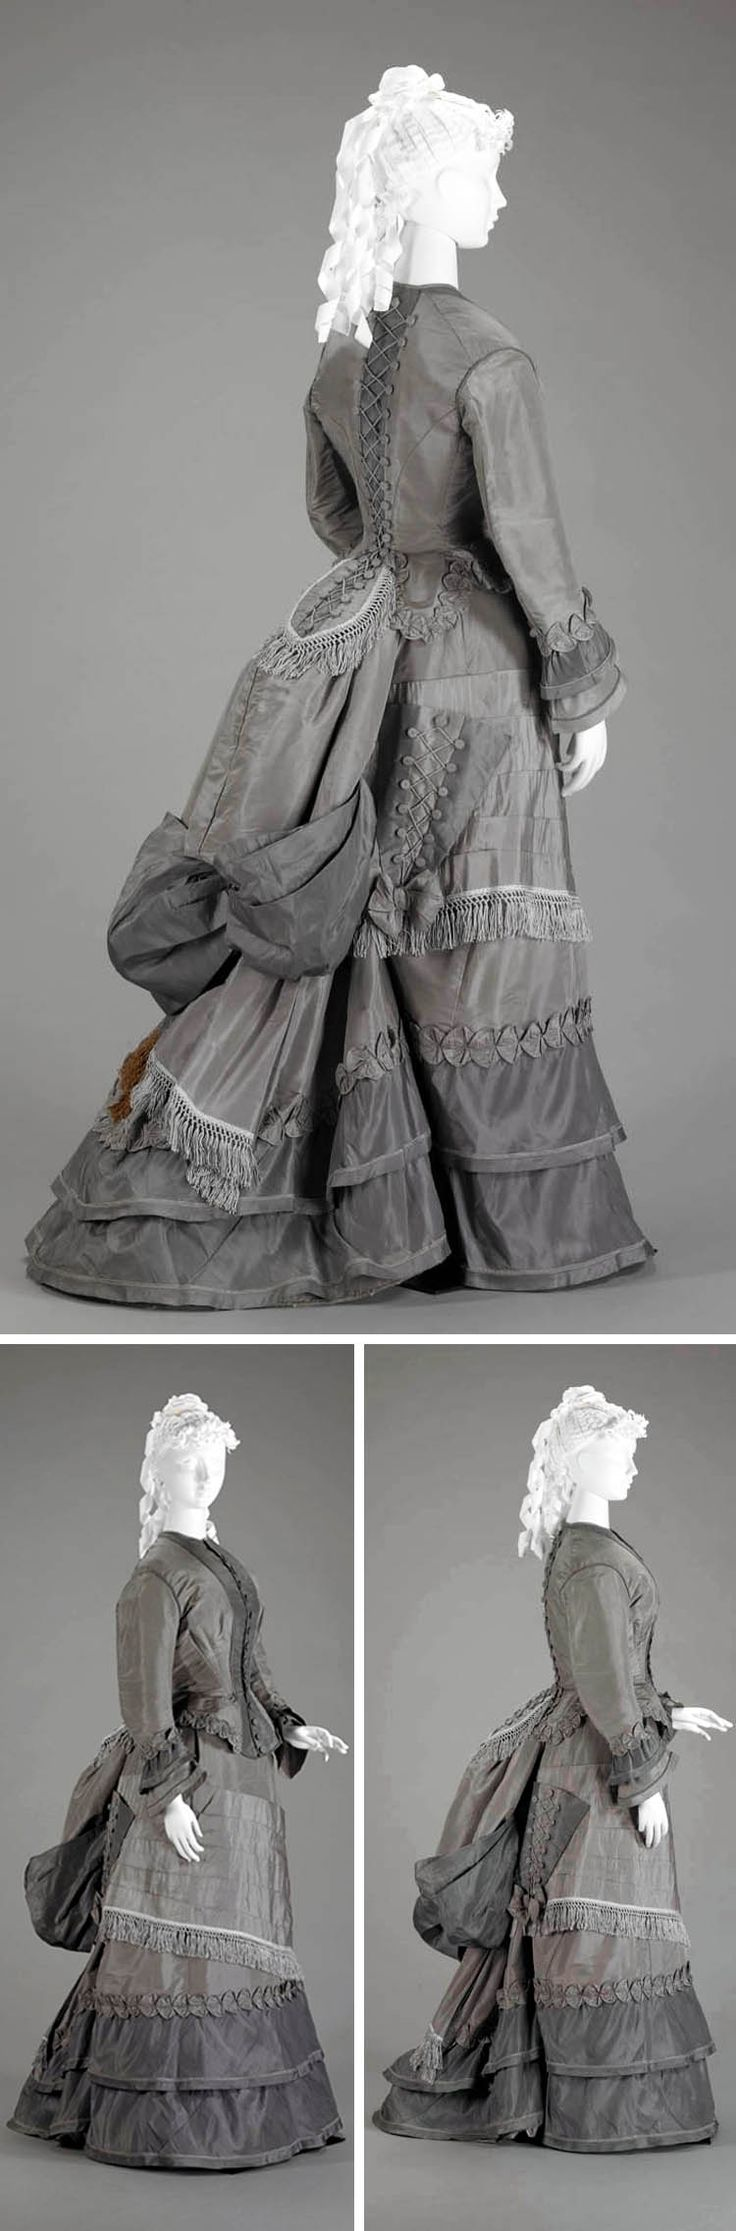 Walking suit ca. 1870s